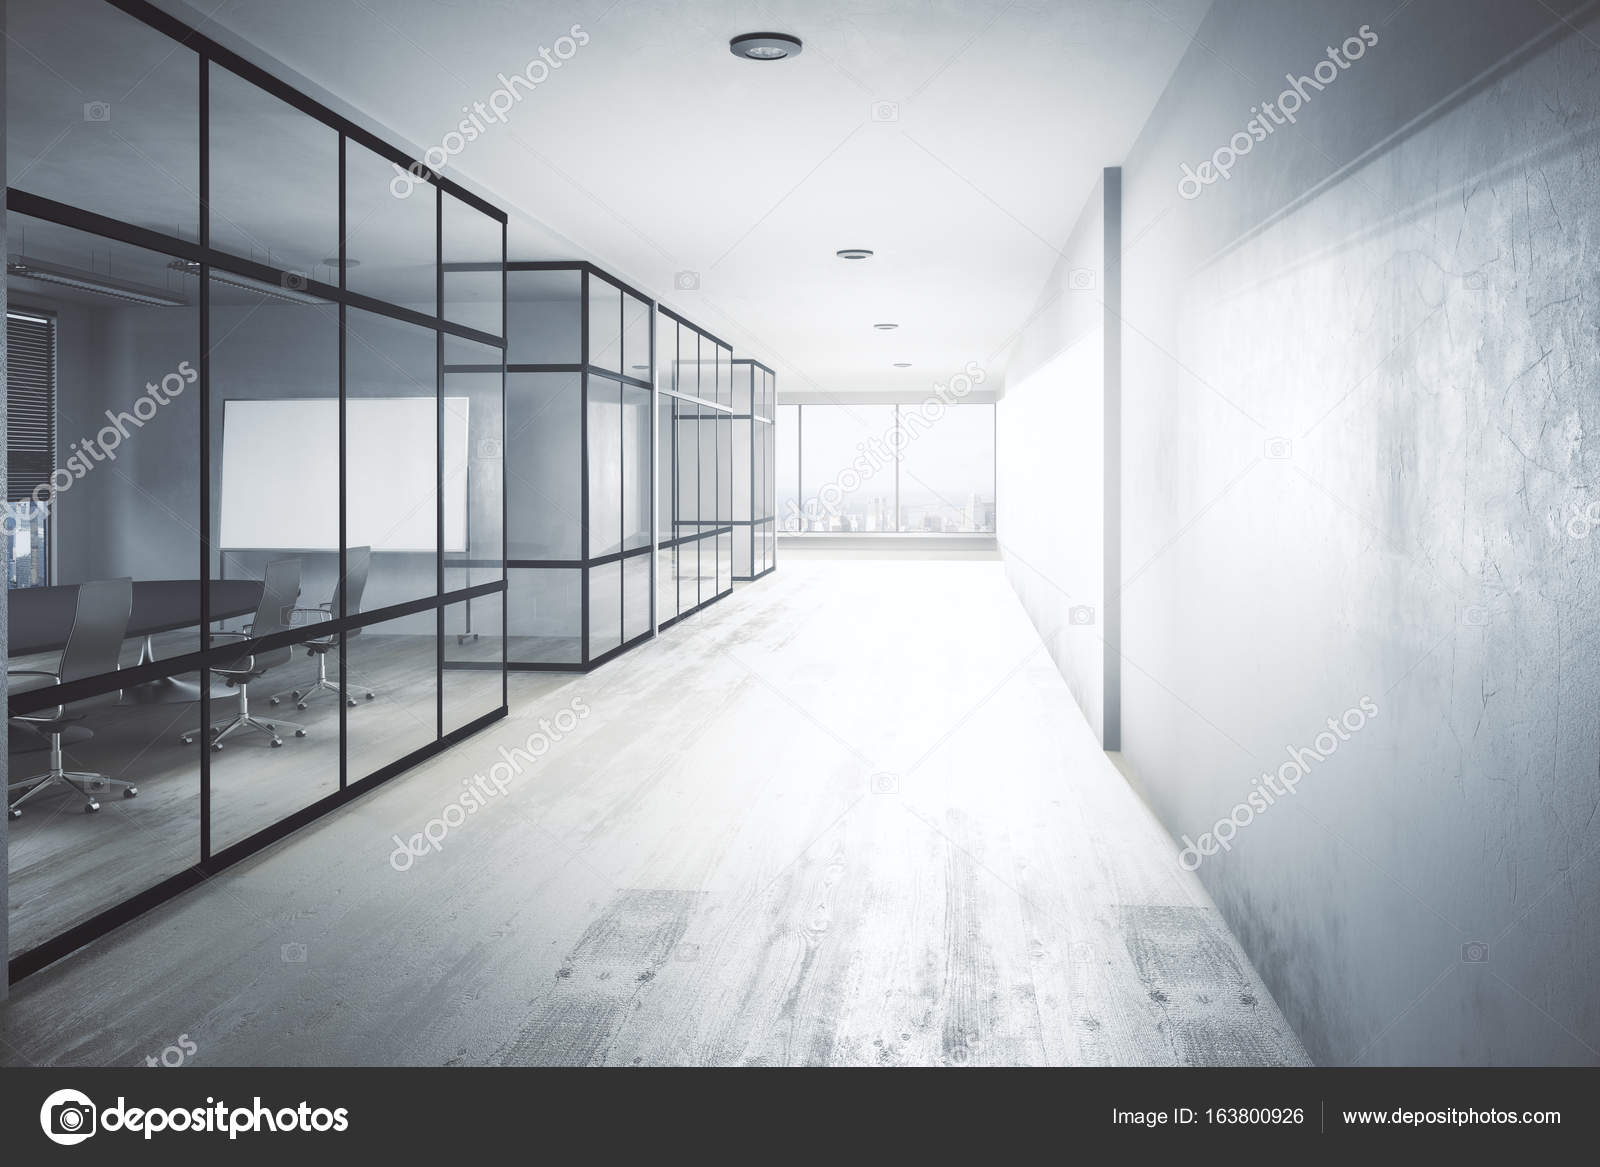 Modern Office Hallway Stock Photo C Peshkov 163800926